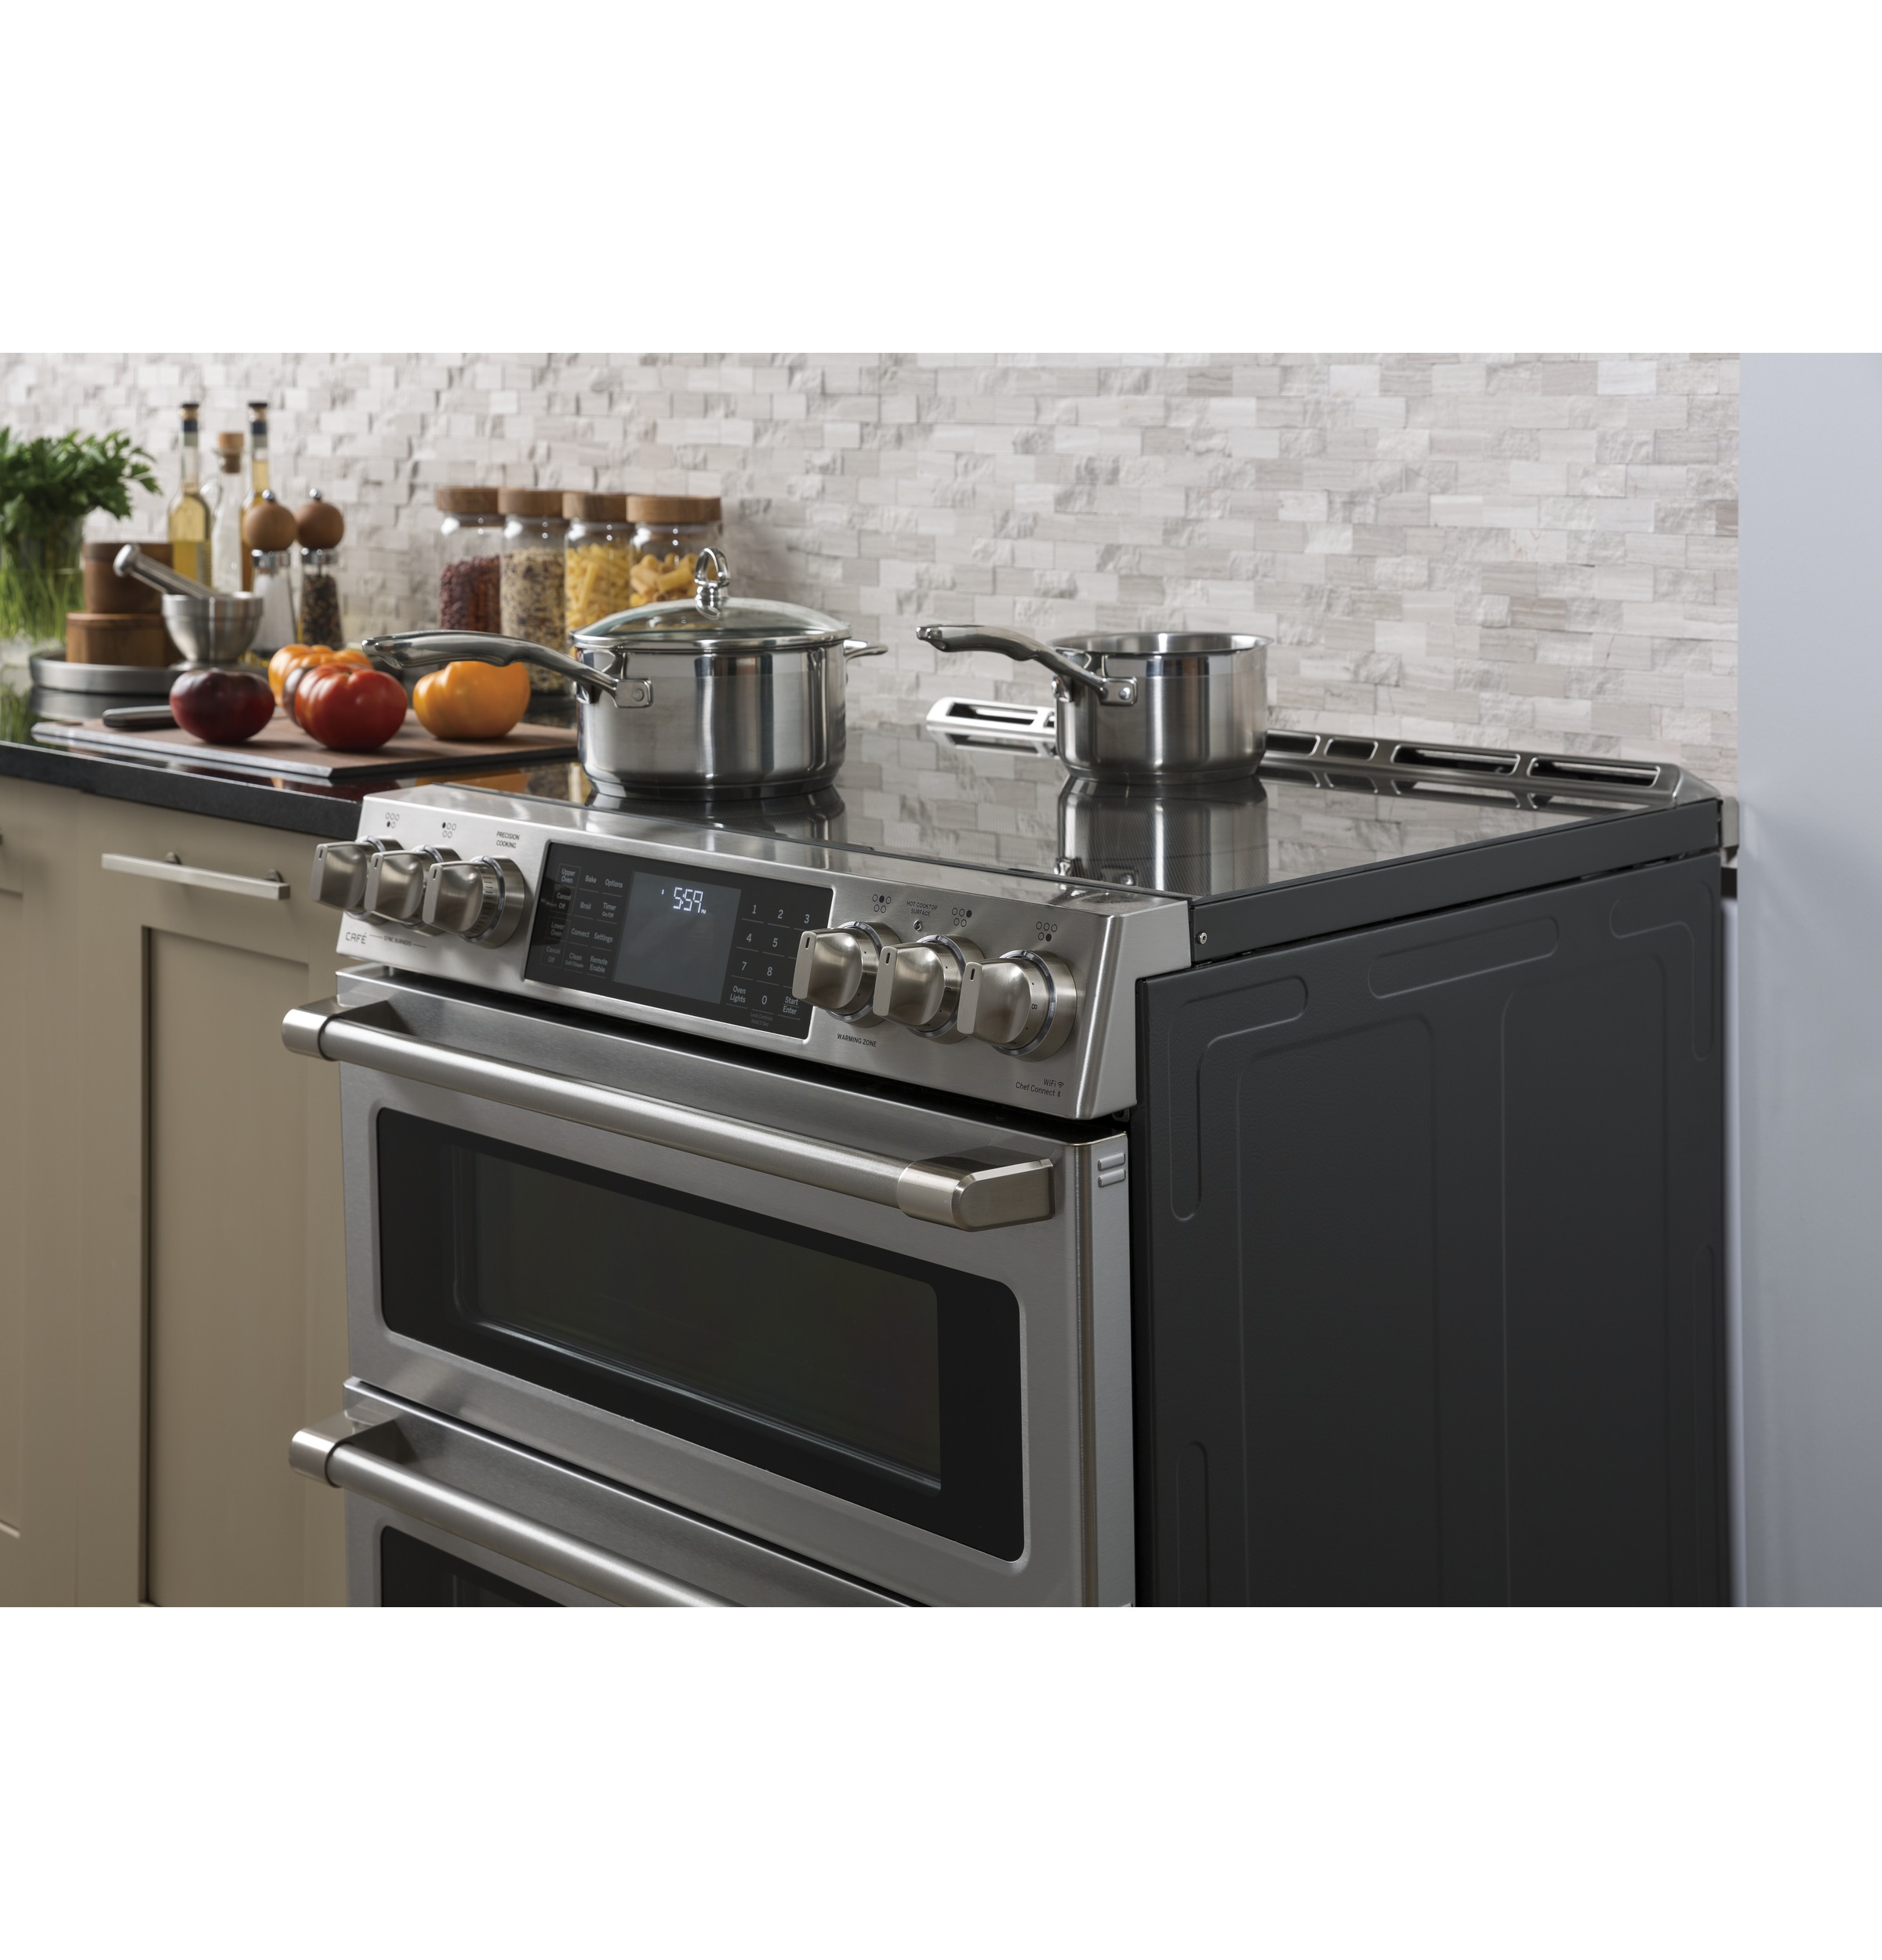 Ge Cafe Series 30 Slide In Front Control Induction And Convection Warm Zone Wiring Diagrams 1 Of 21